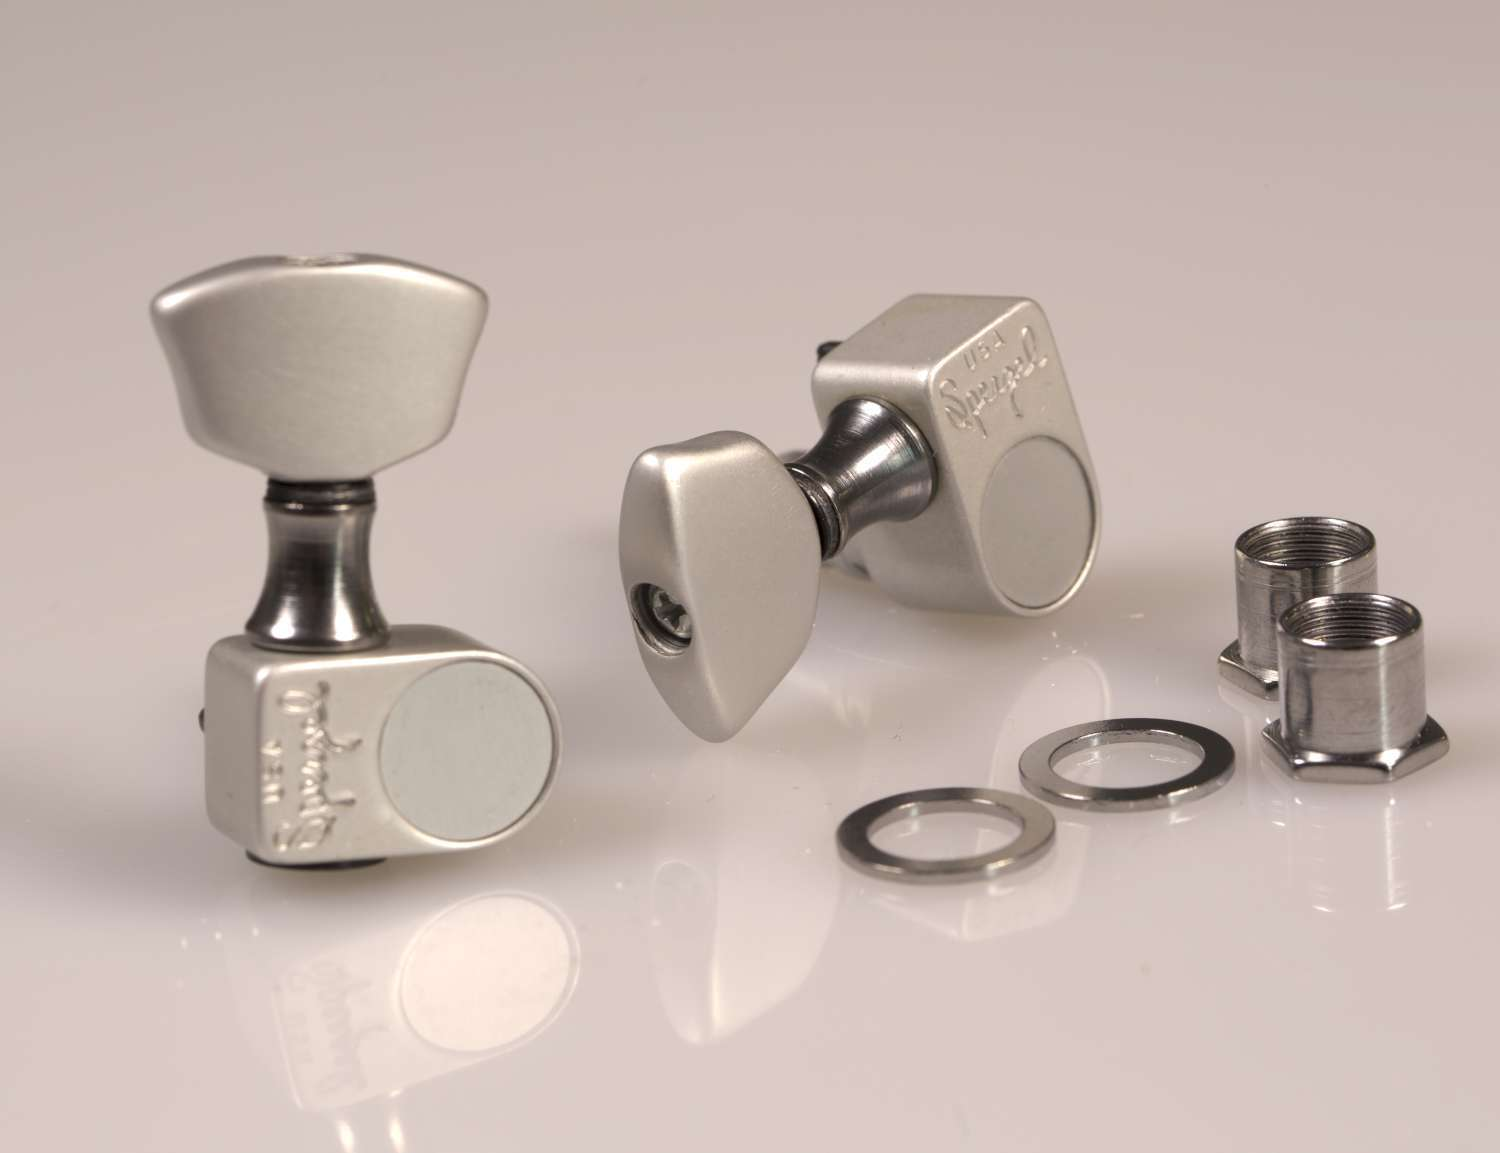 Genuine Sperzel Solid Pro 3x3 Satin Chrome tuners - Auth Dealer 3x3-STD-SC